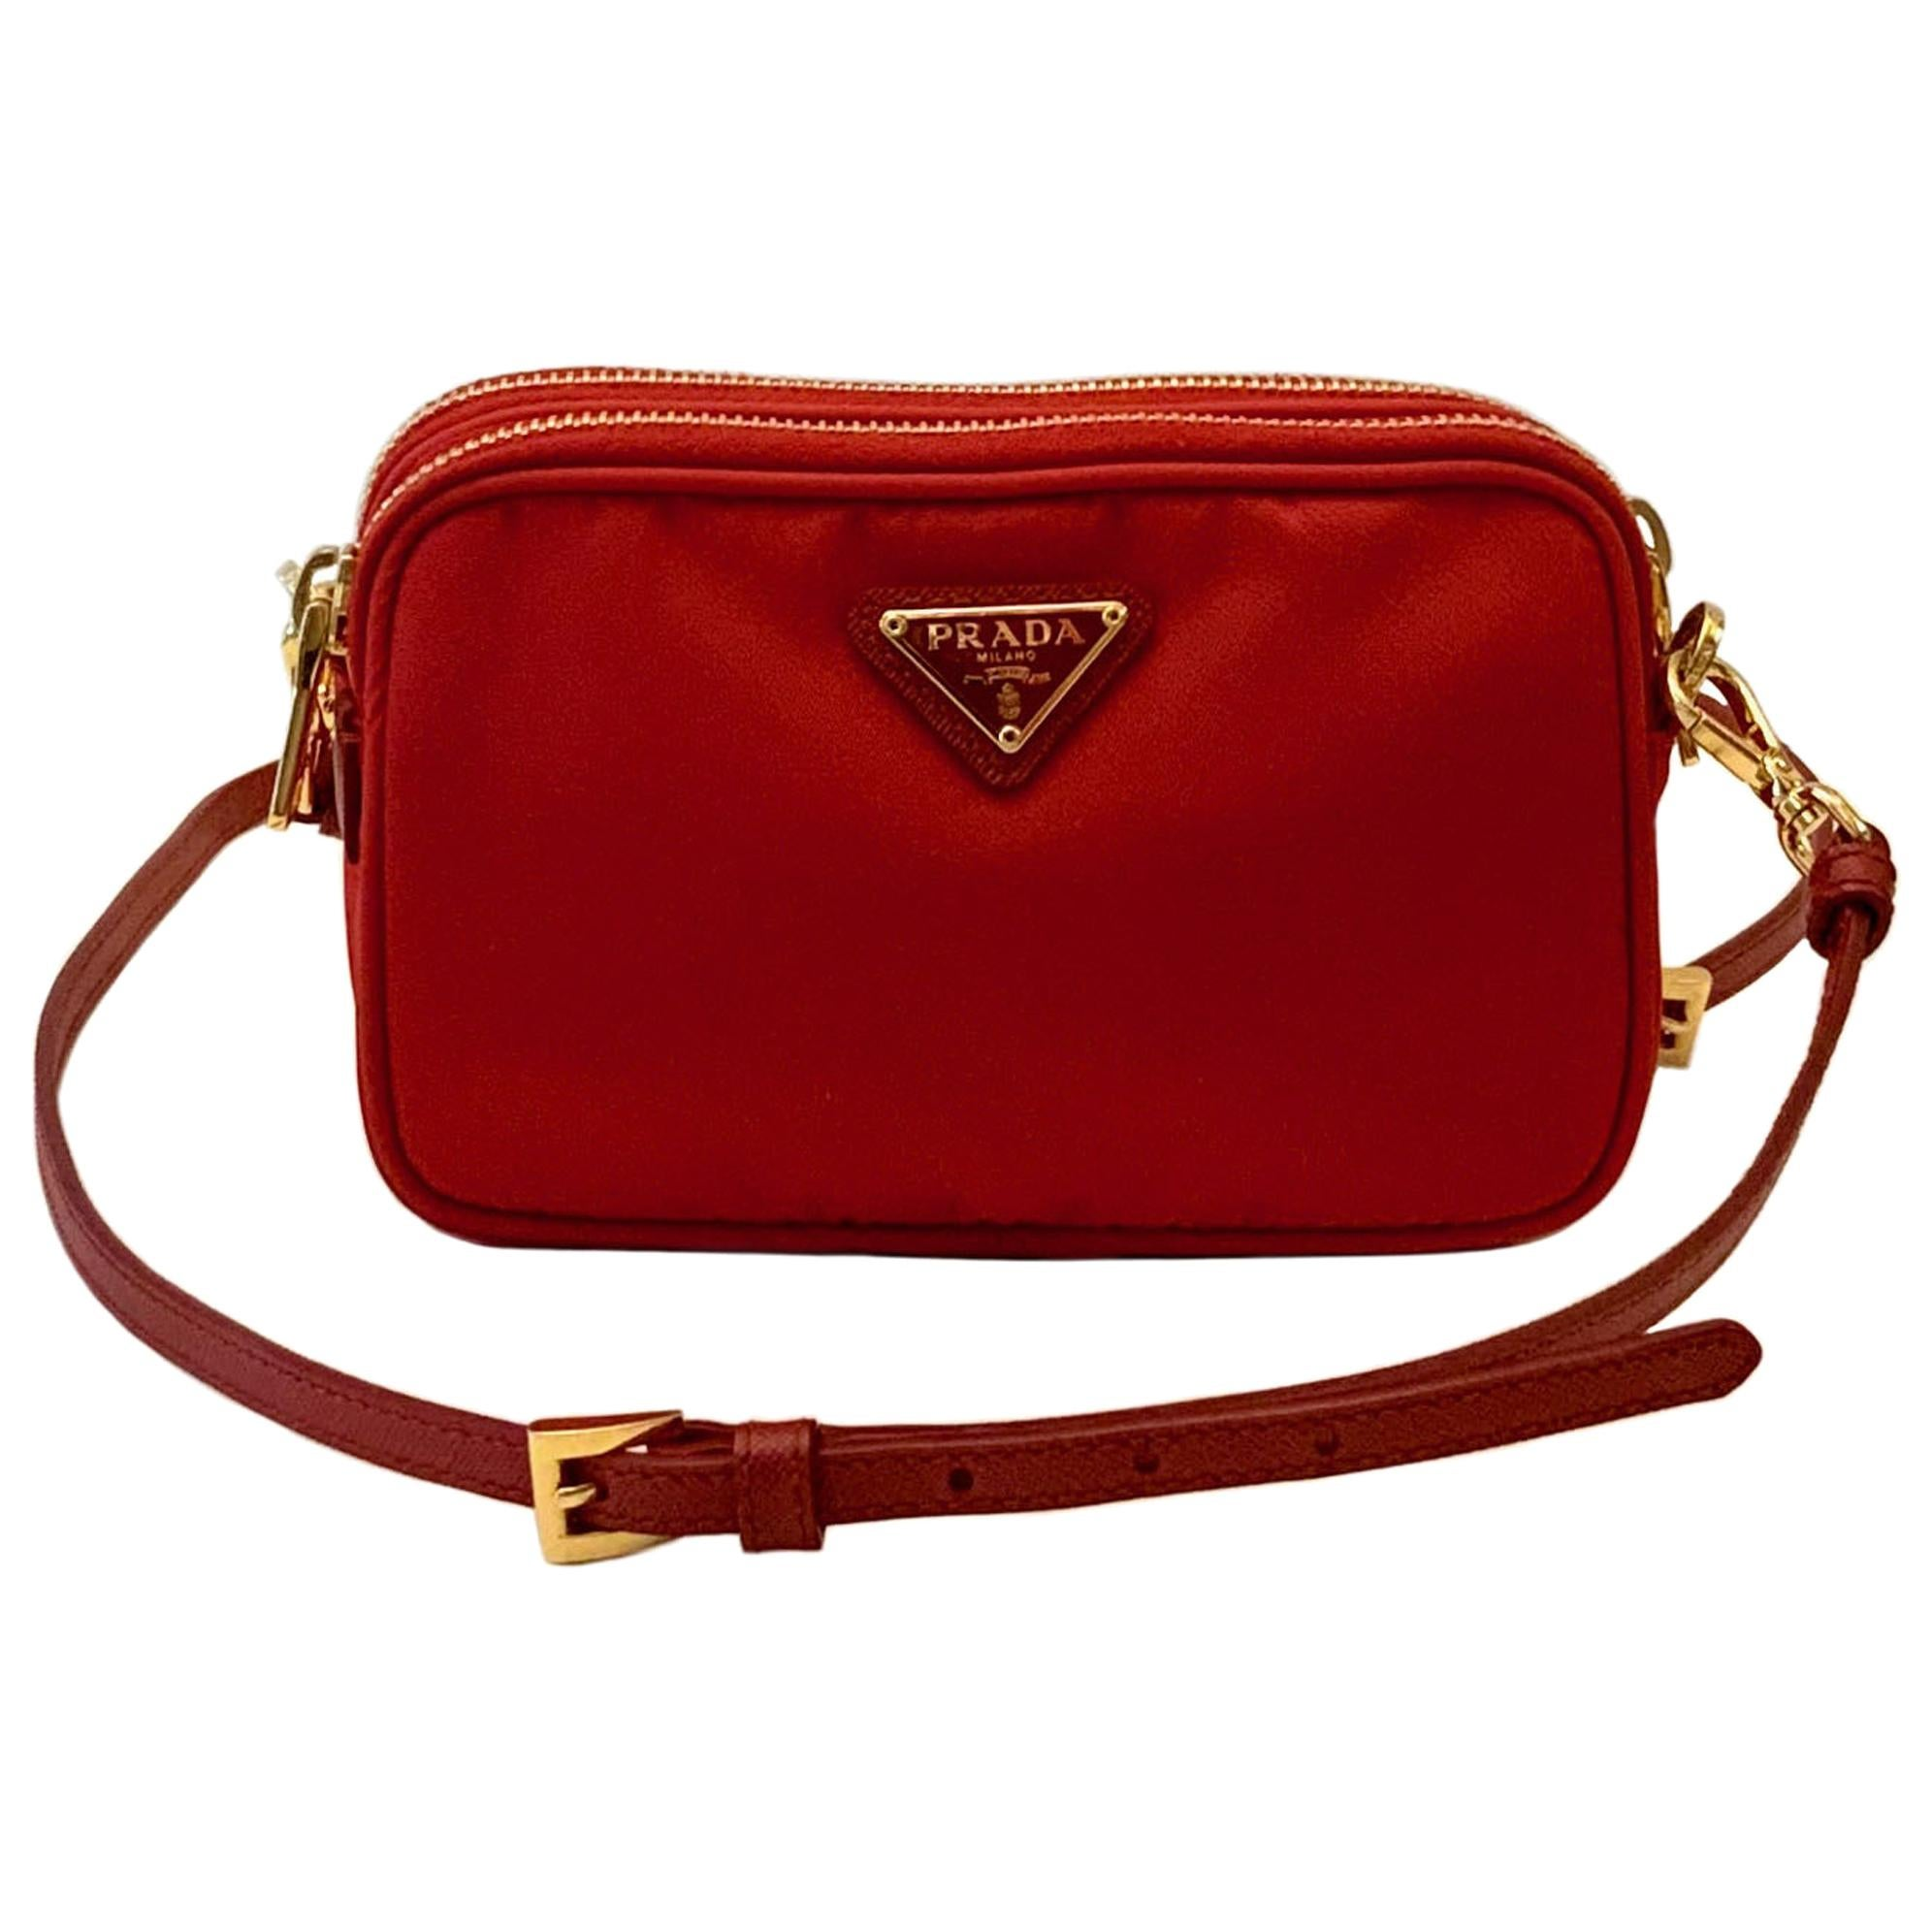 Prada Tessuto Nylon Mini Camera Crossbody Bag